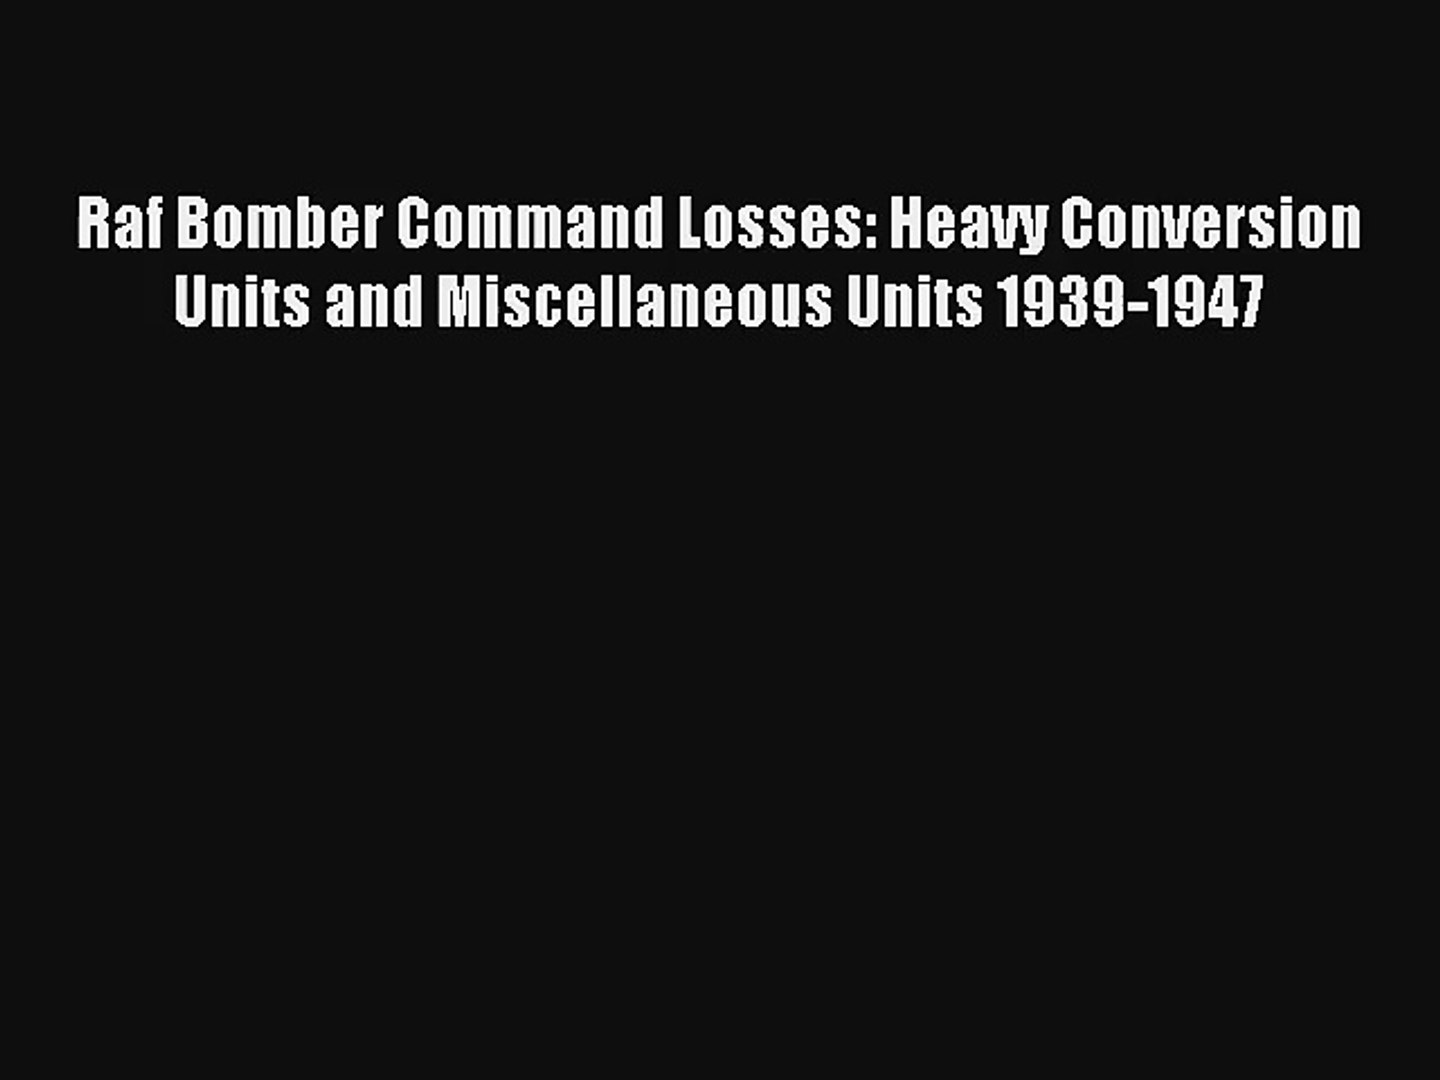 Raf Bomber Command Losses: Heavy Conversion Units and Miscellaneous Units 1939-1947 Read Download